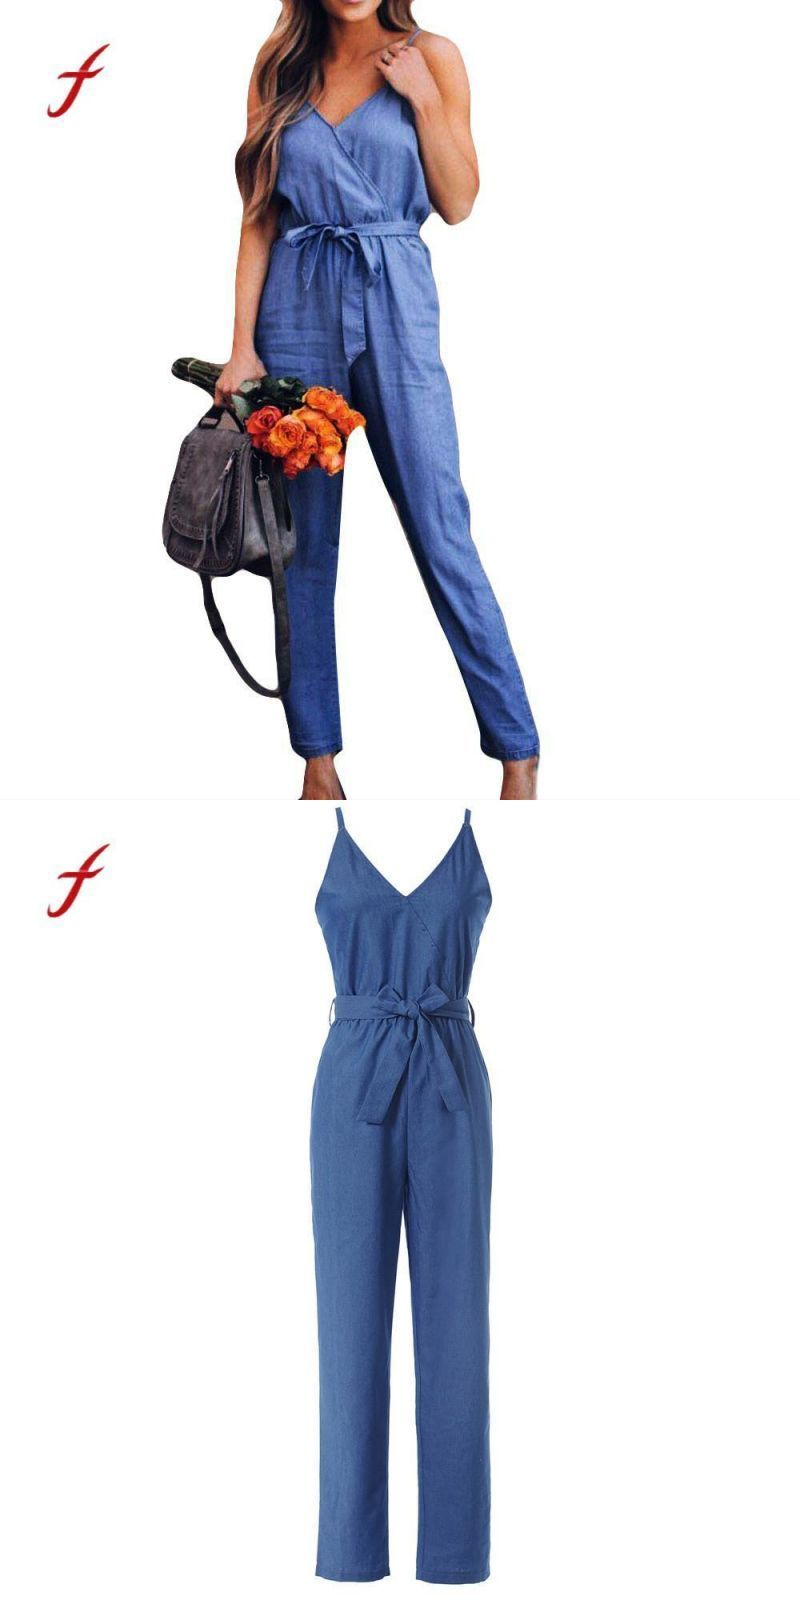 ef078644f07 2018 women camisole denim jumpsuits lady loose playsuit long wide leg  trousers macacao feminino  polyester  jumpsuits  casual  regular  solid   none ...